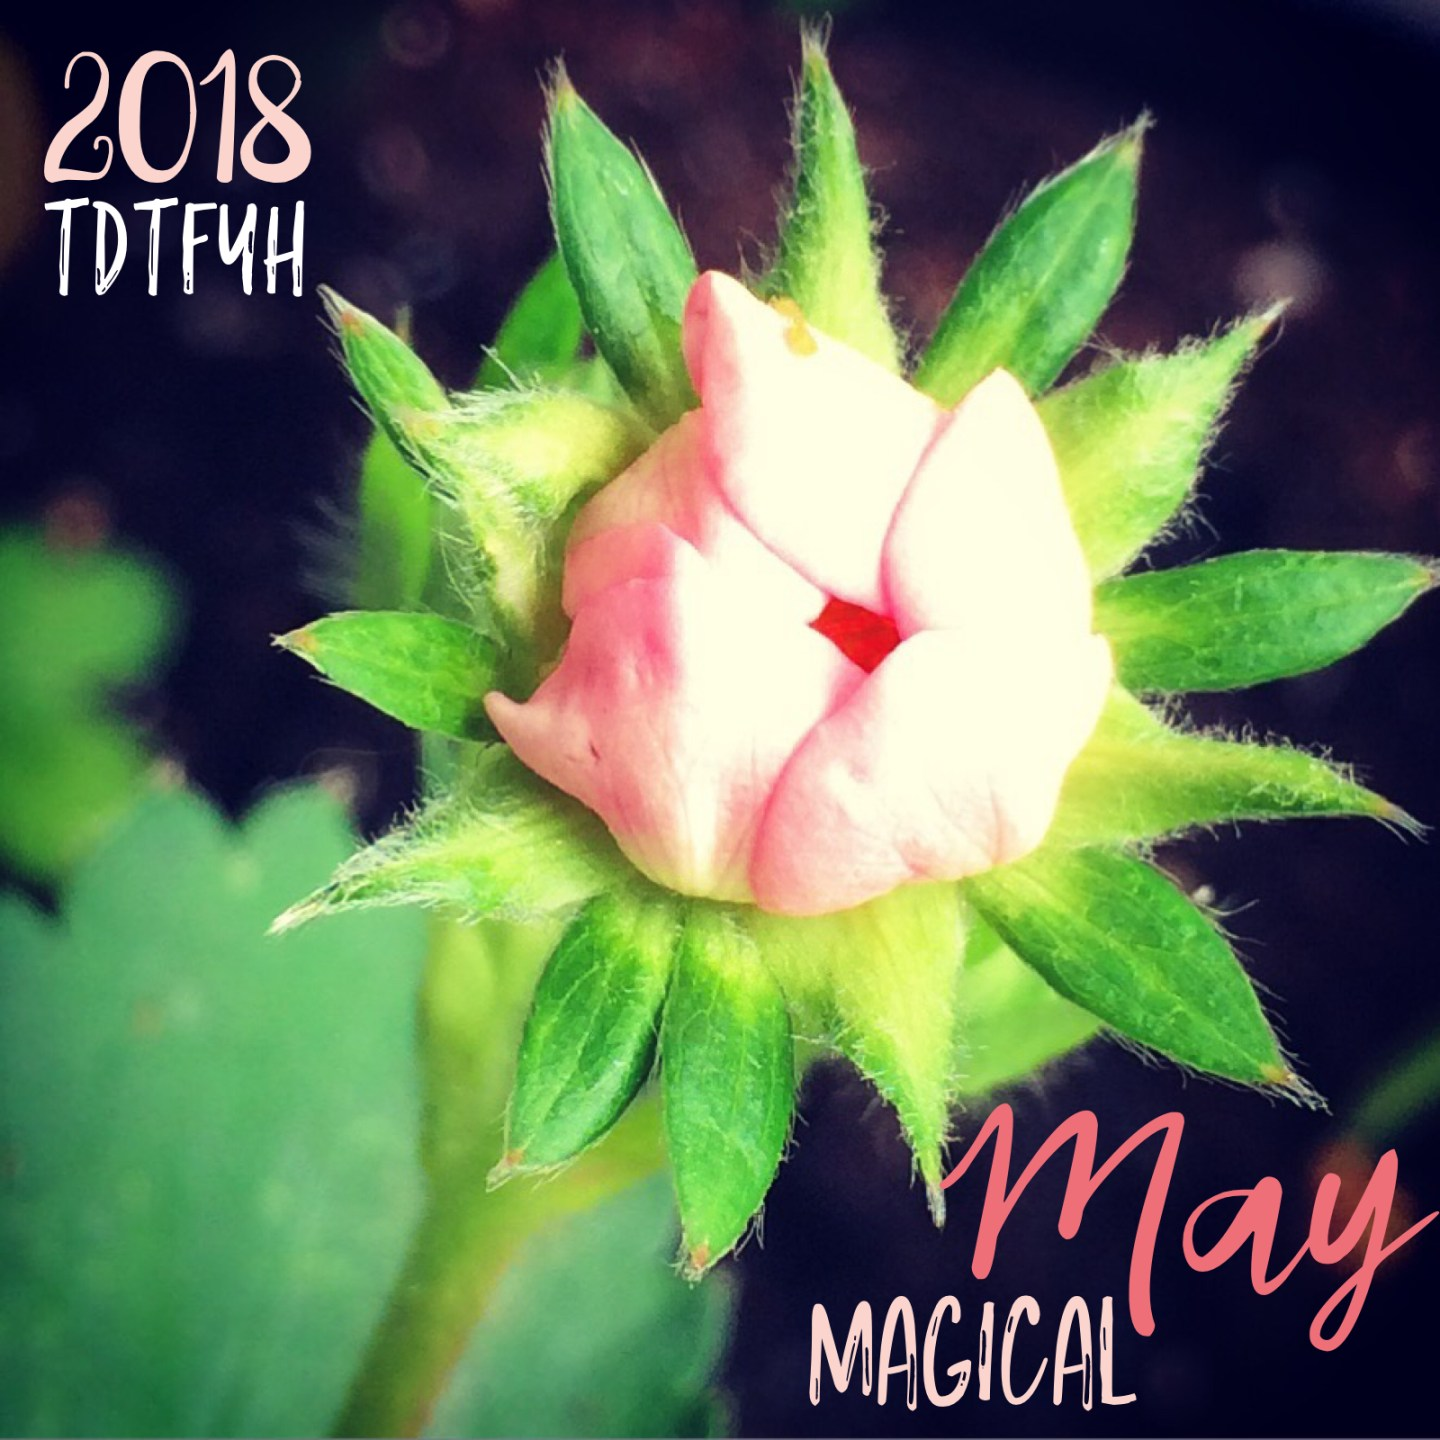 Things we'll do this month: May